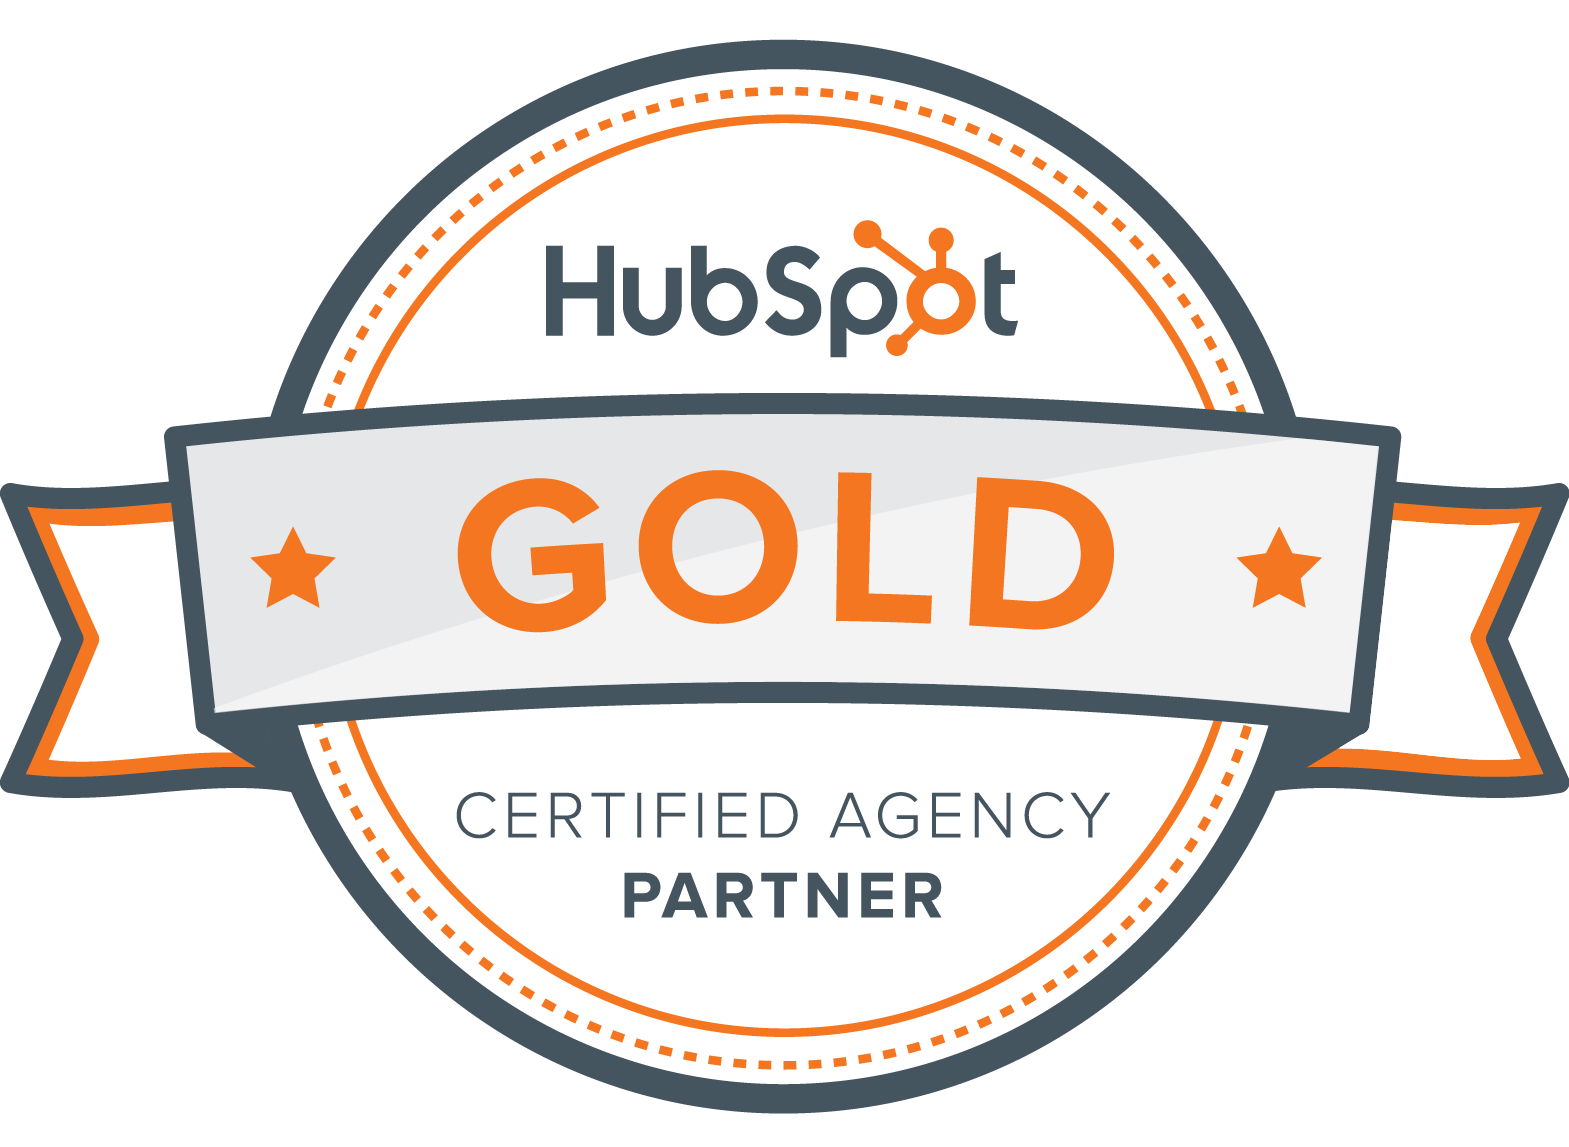 gold-hubspot-partner-agency